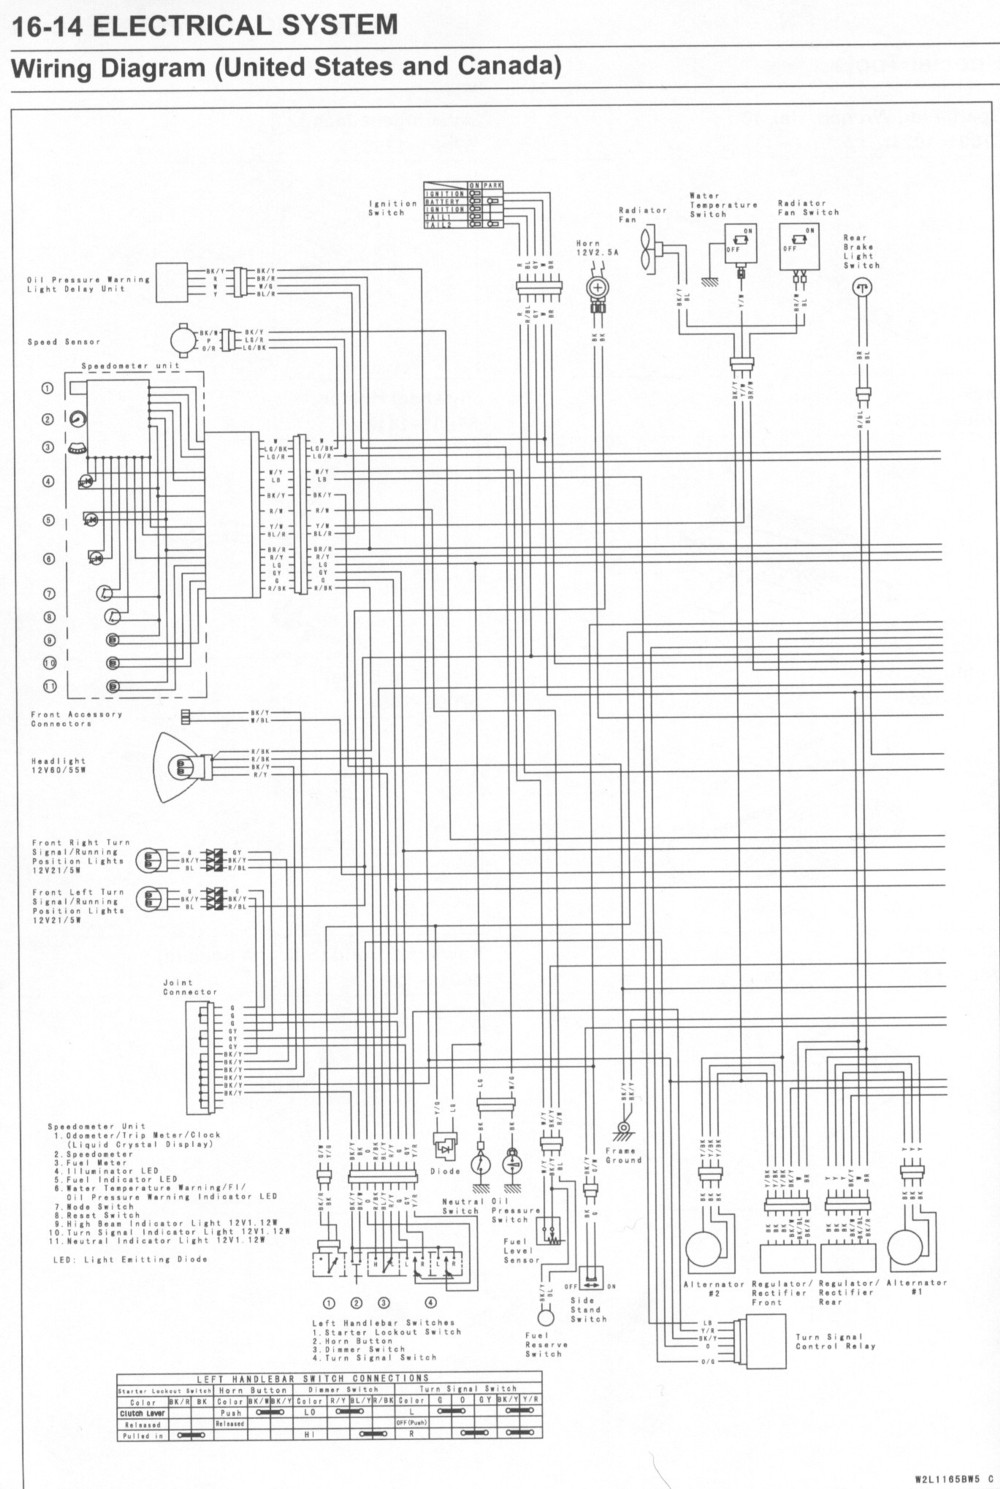 1998 Kawasaki Wiring Diagrams Diagram Services Zx9r 1500 Trusted U2022 Rh Weneedradio Org